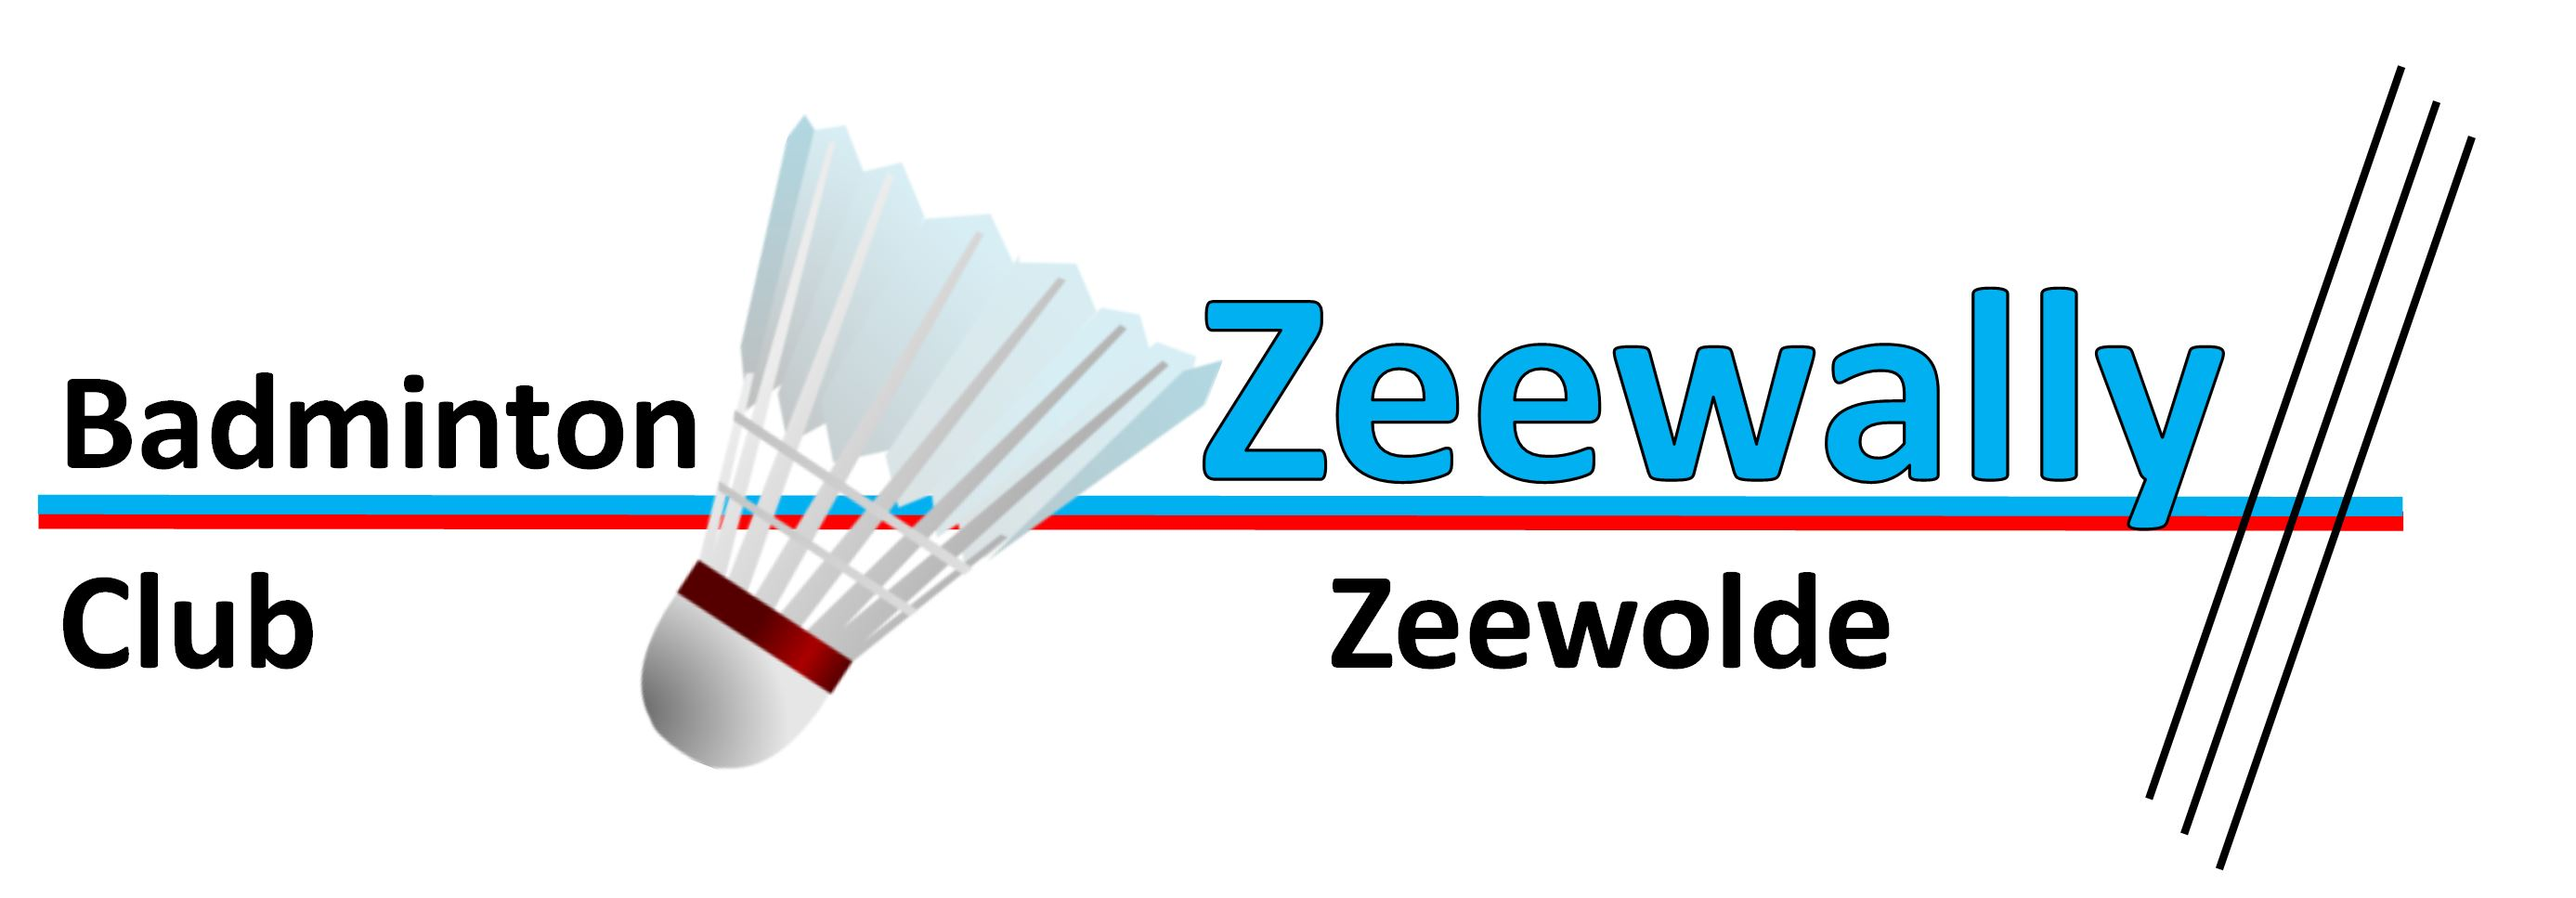 Badminton Club Zeewally